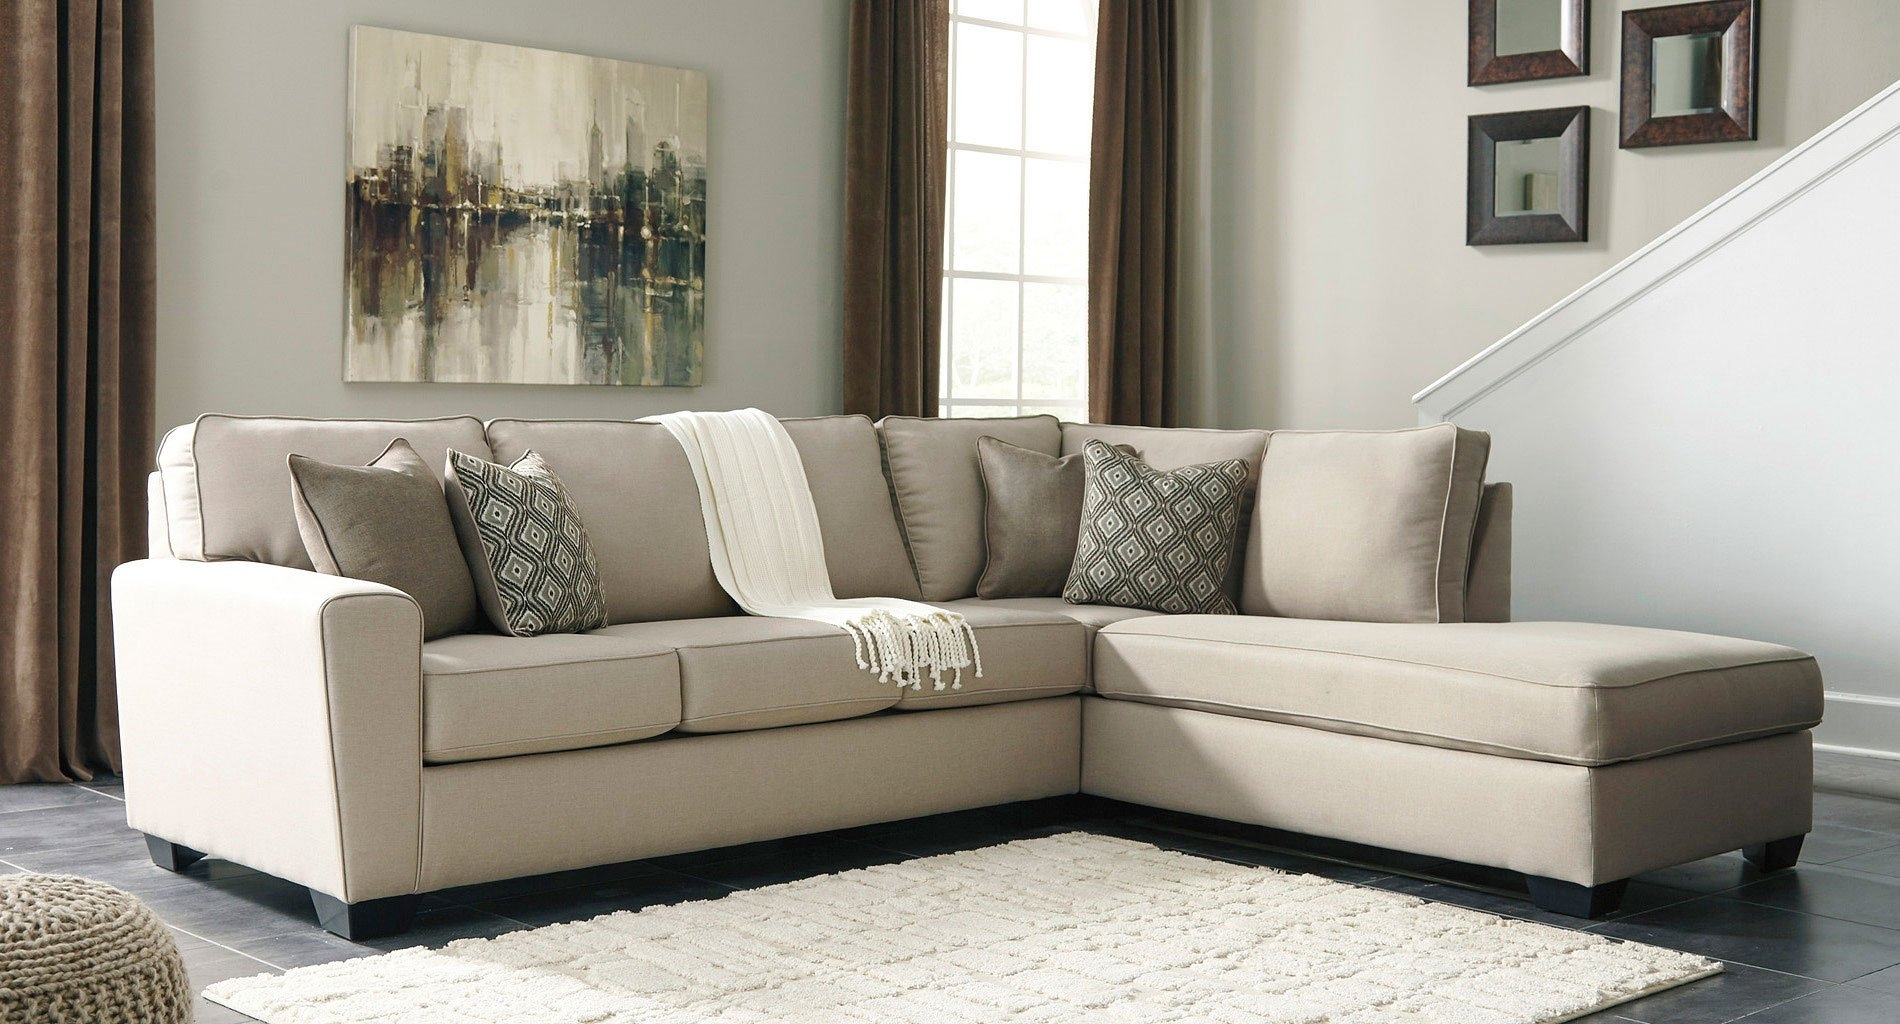 Calicho Ecru Right Chaise Sectional - Living Room Furniture - Living throughout Cosmos Grey 2 Piece Sectionals With Raf Chaise (Image 5 of 30)